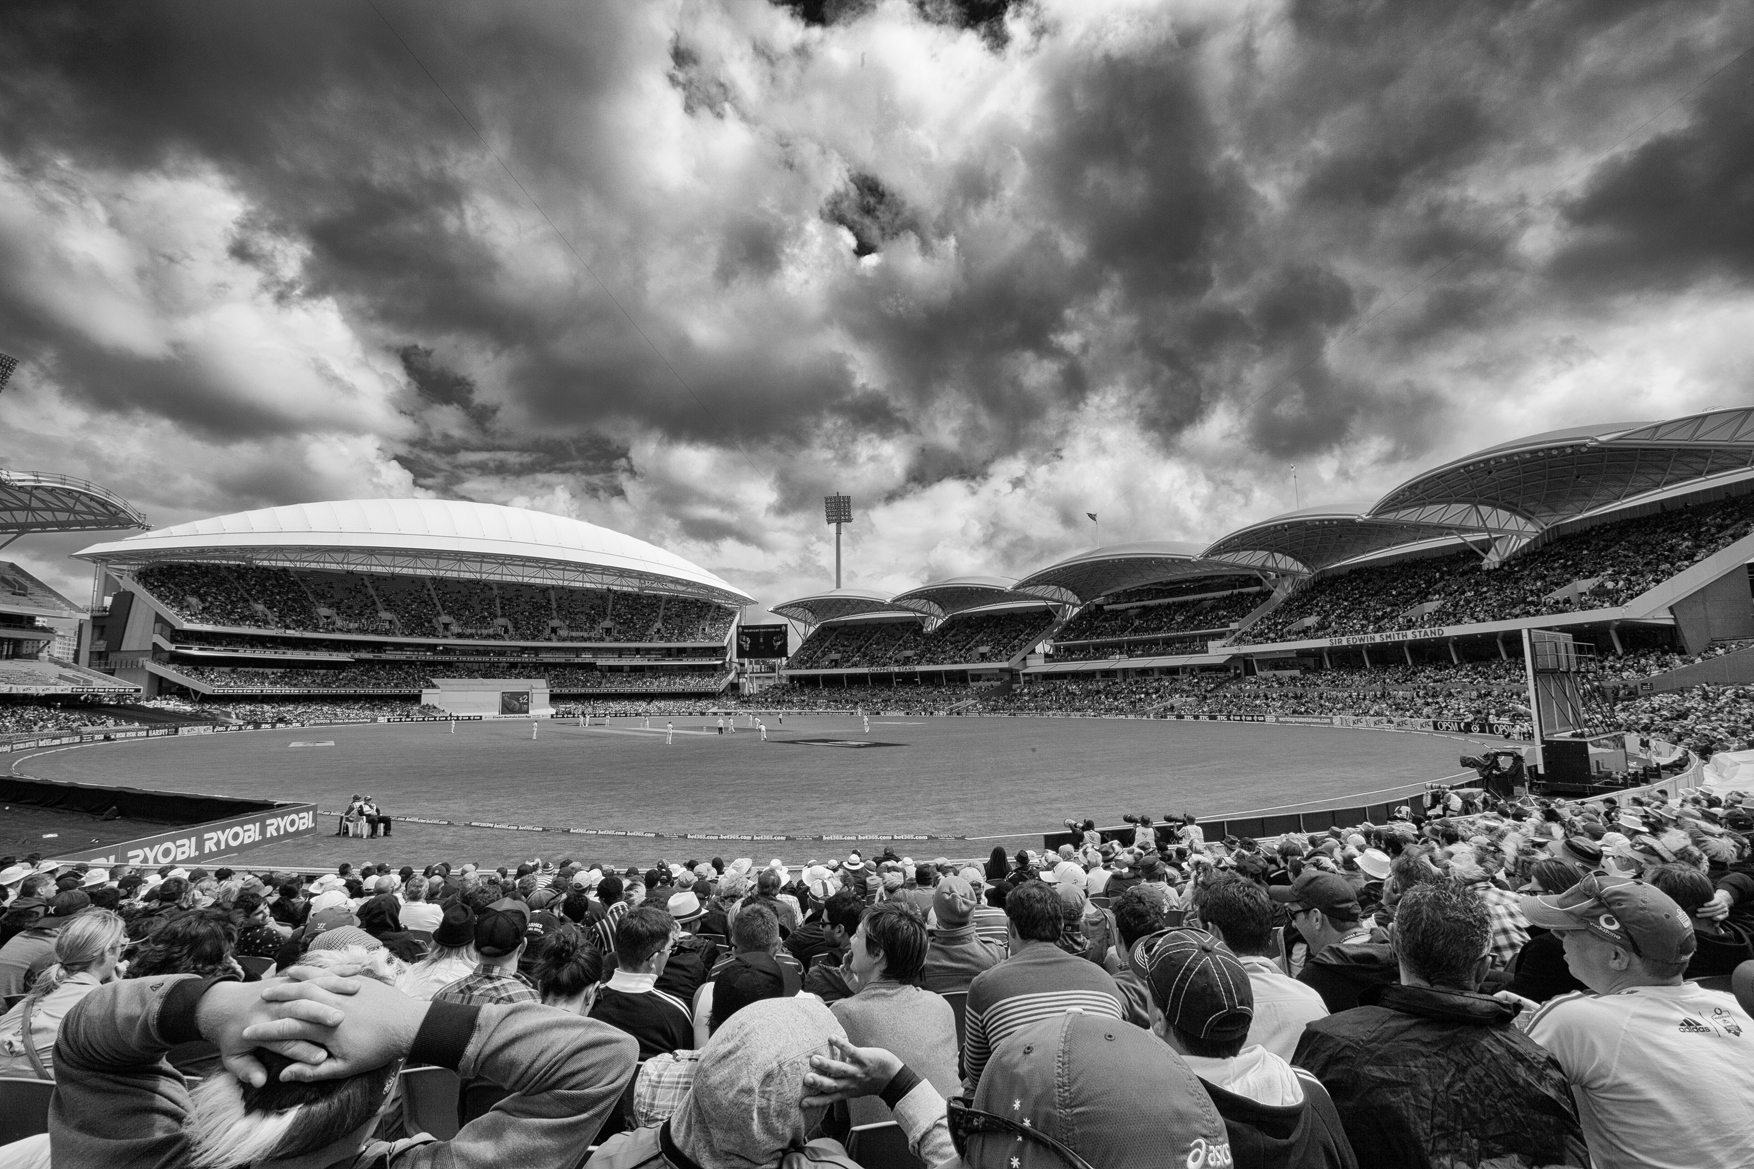 First Ashes Test at the redeveloped Adelaide Oval, 2013 | photograph by Chin Tan